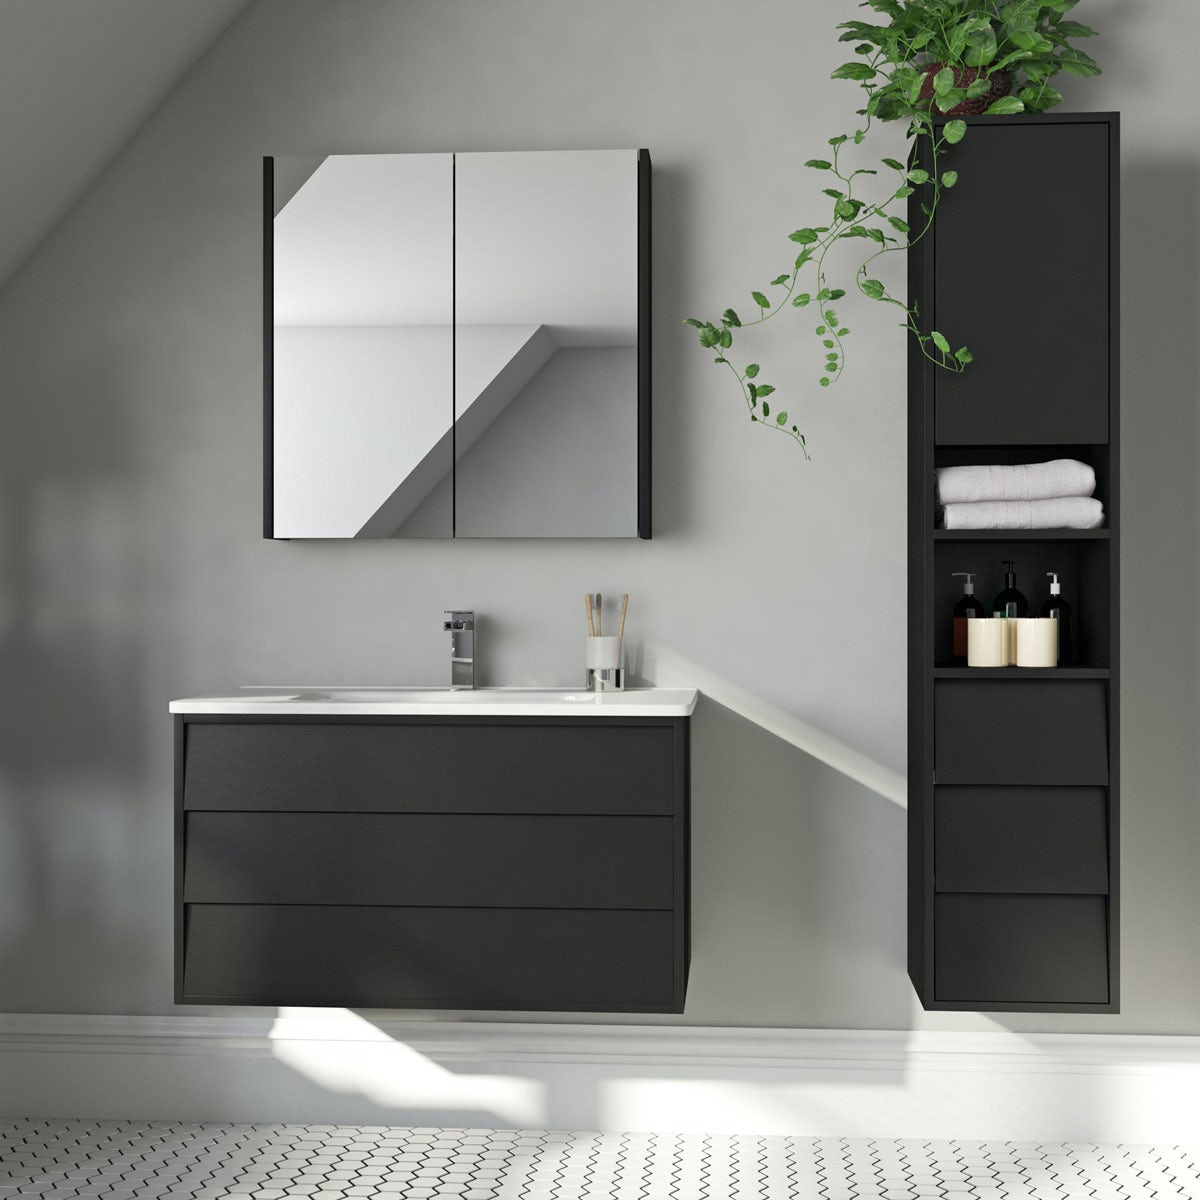 Mode Cooper anthracite furniture package with vanity unit 800mm